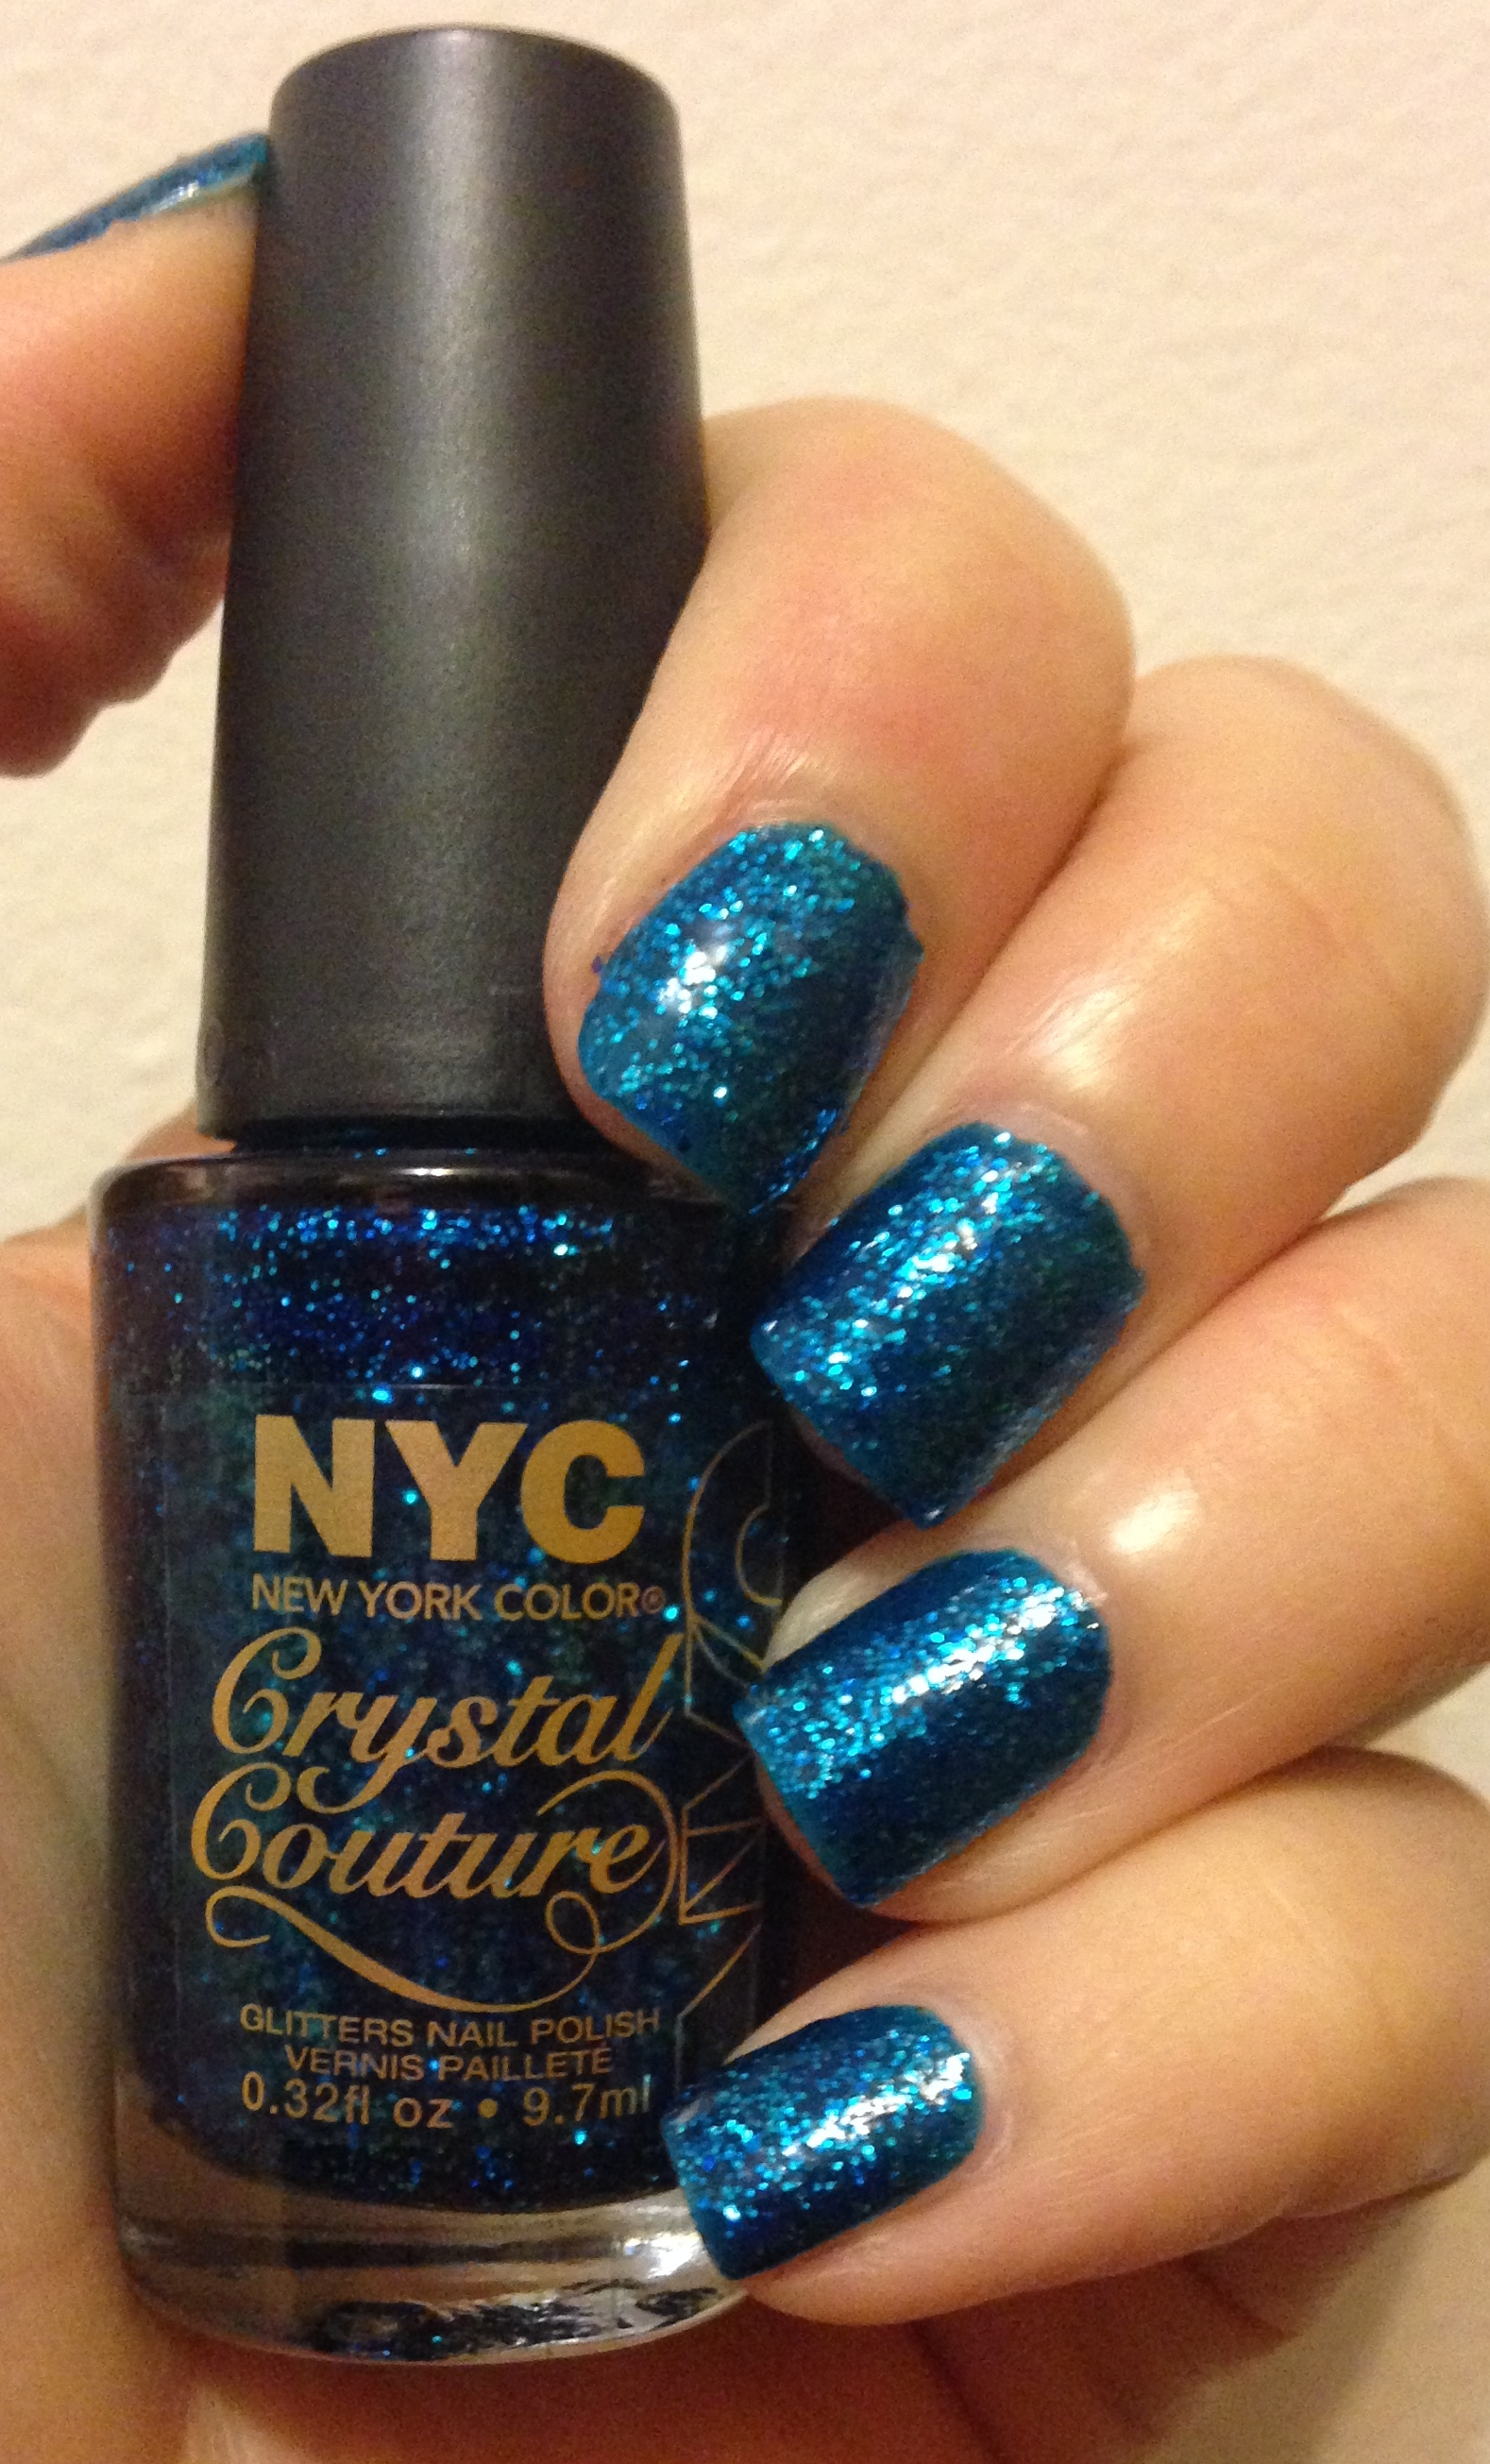 NYC New York Color Fashion Queen Collection | Crystal Couture ...